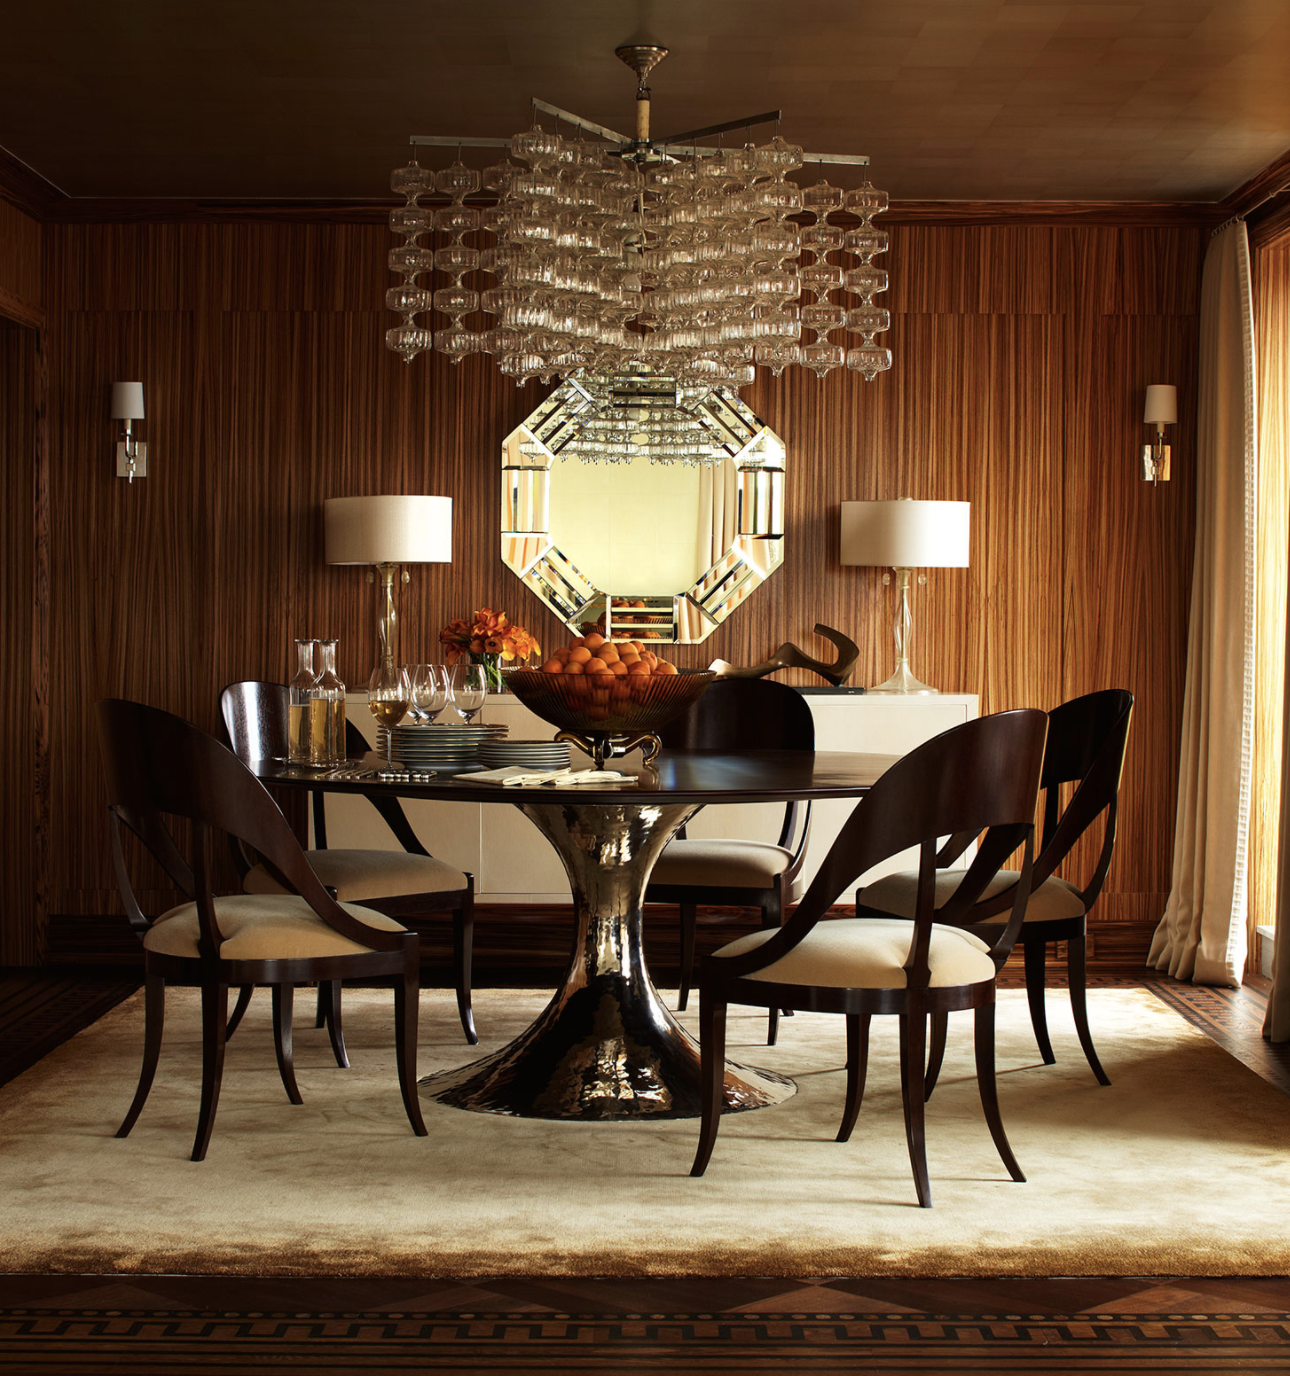 James Michael Howard Interiors Luxury Elegant And Beautiful Dining Room With Dark Chairs And Gold Center Tab With Images Dining Room Design Contemporary Dining Room Design